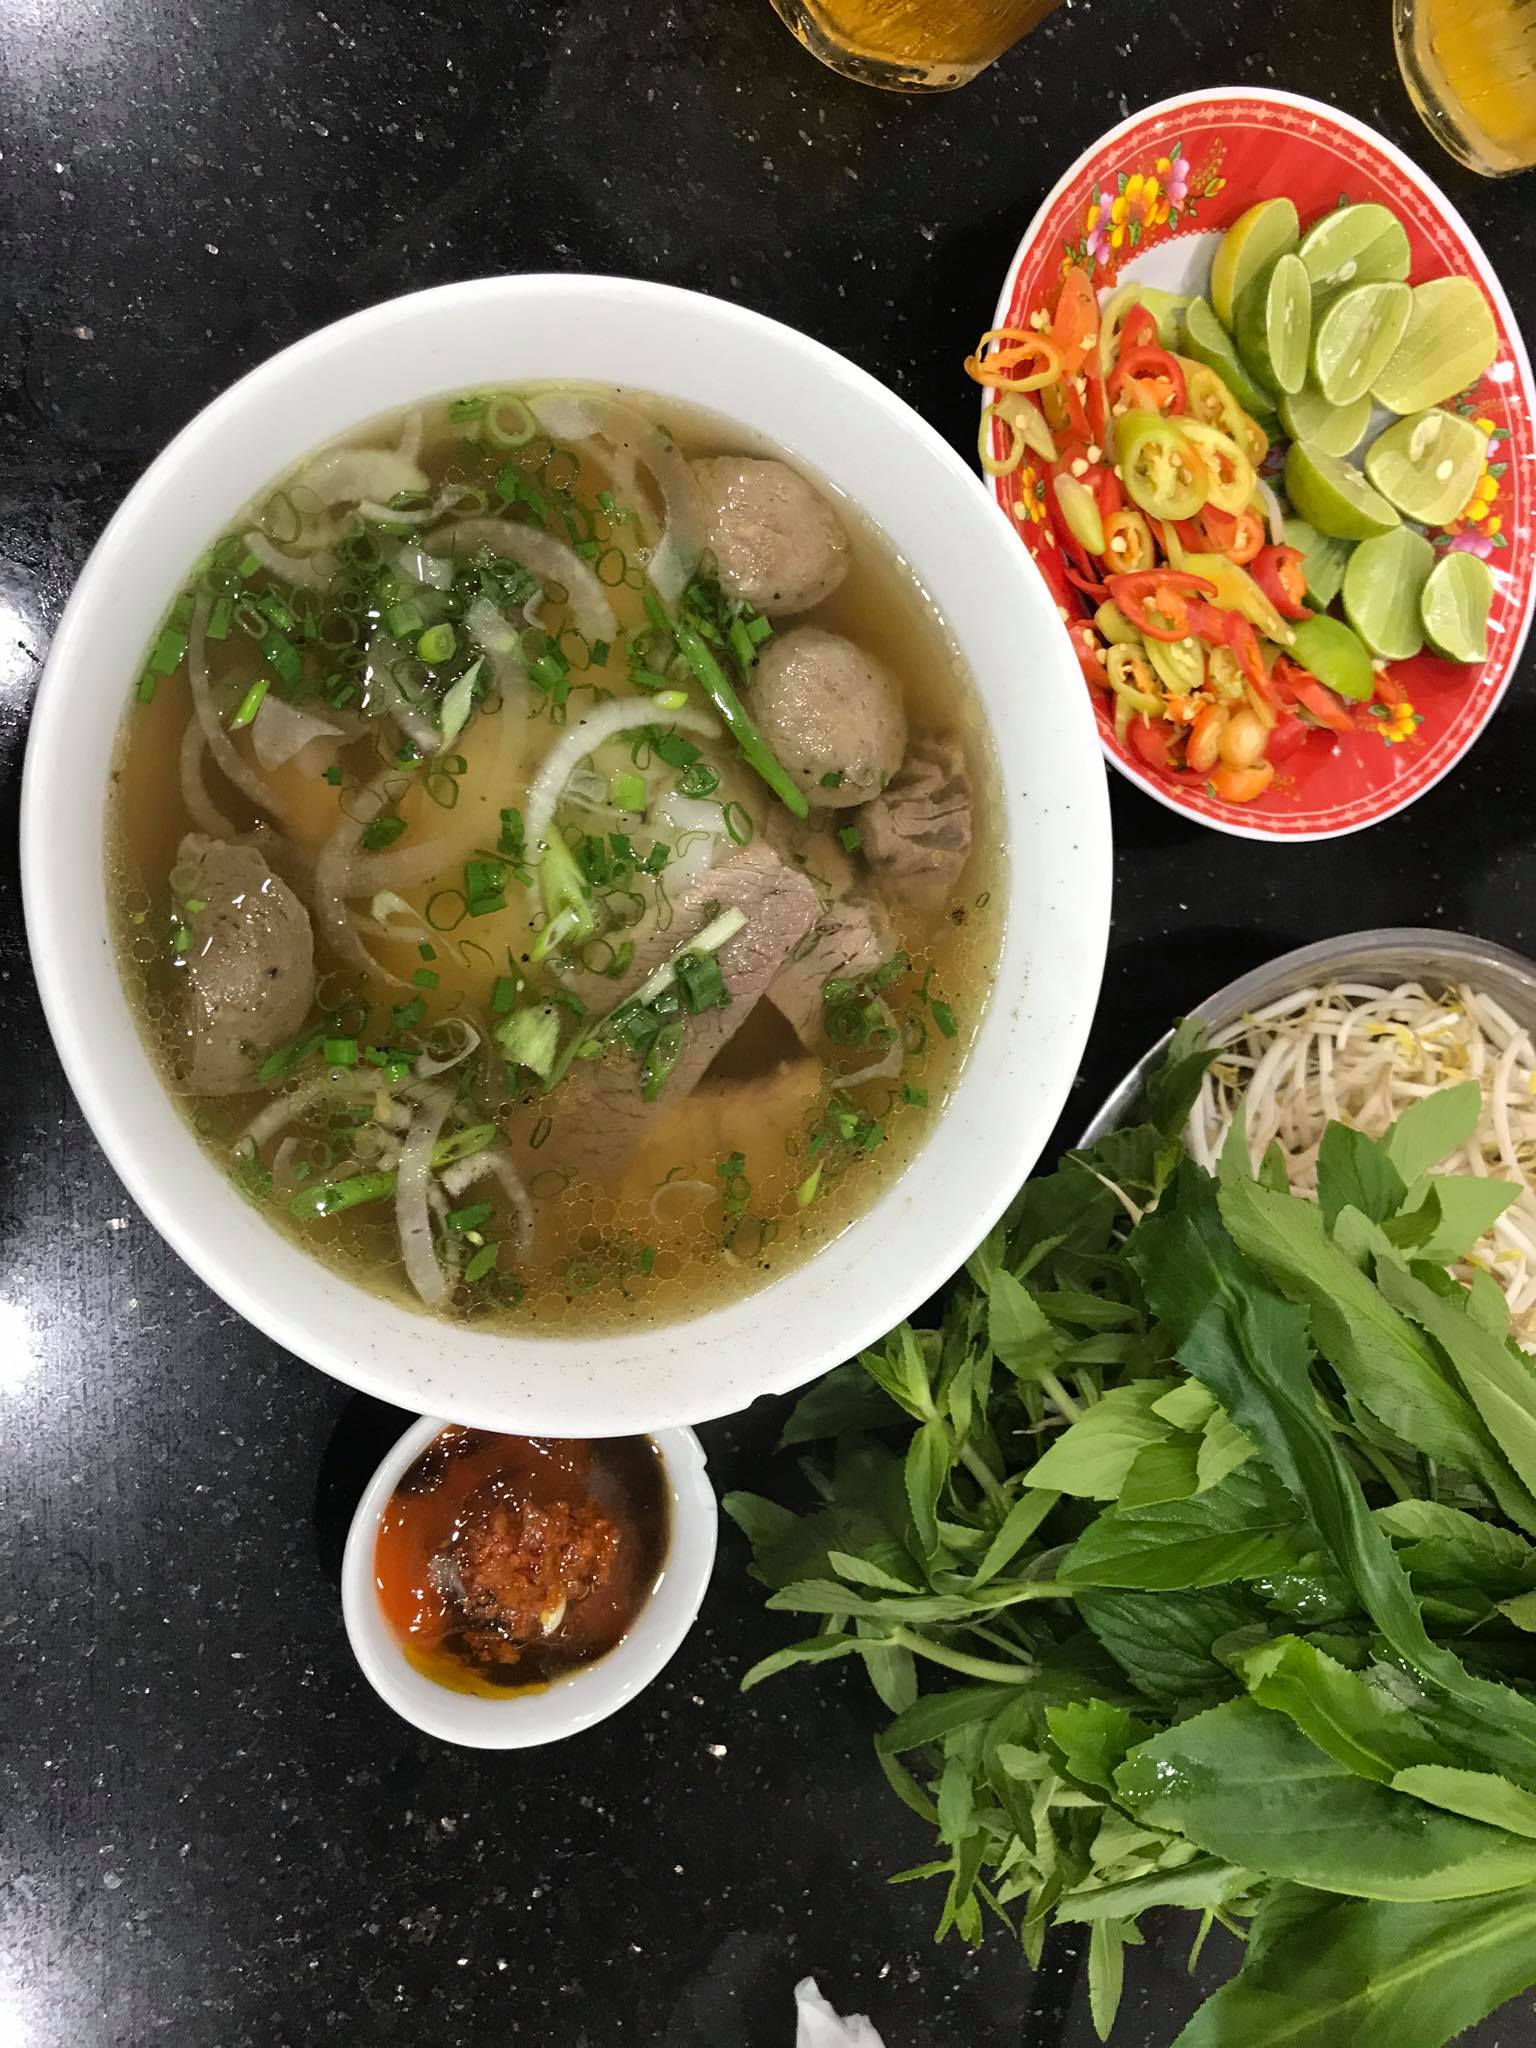 'As a long-time southerner, and Australian expat, my heart goes to Vietnam's southern pho'